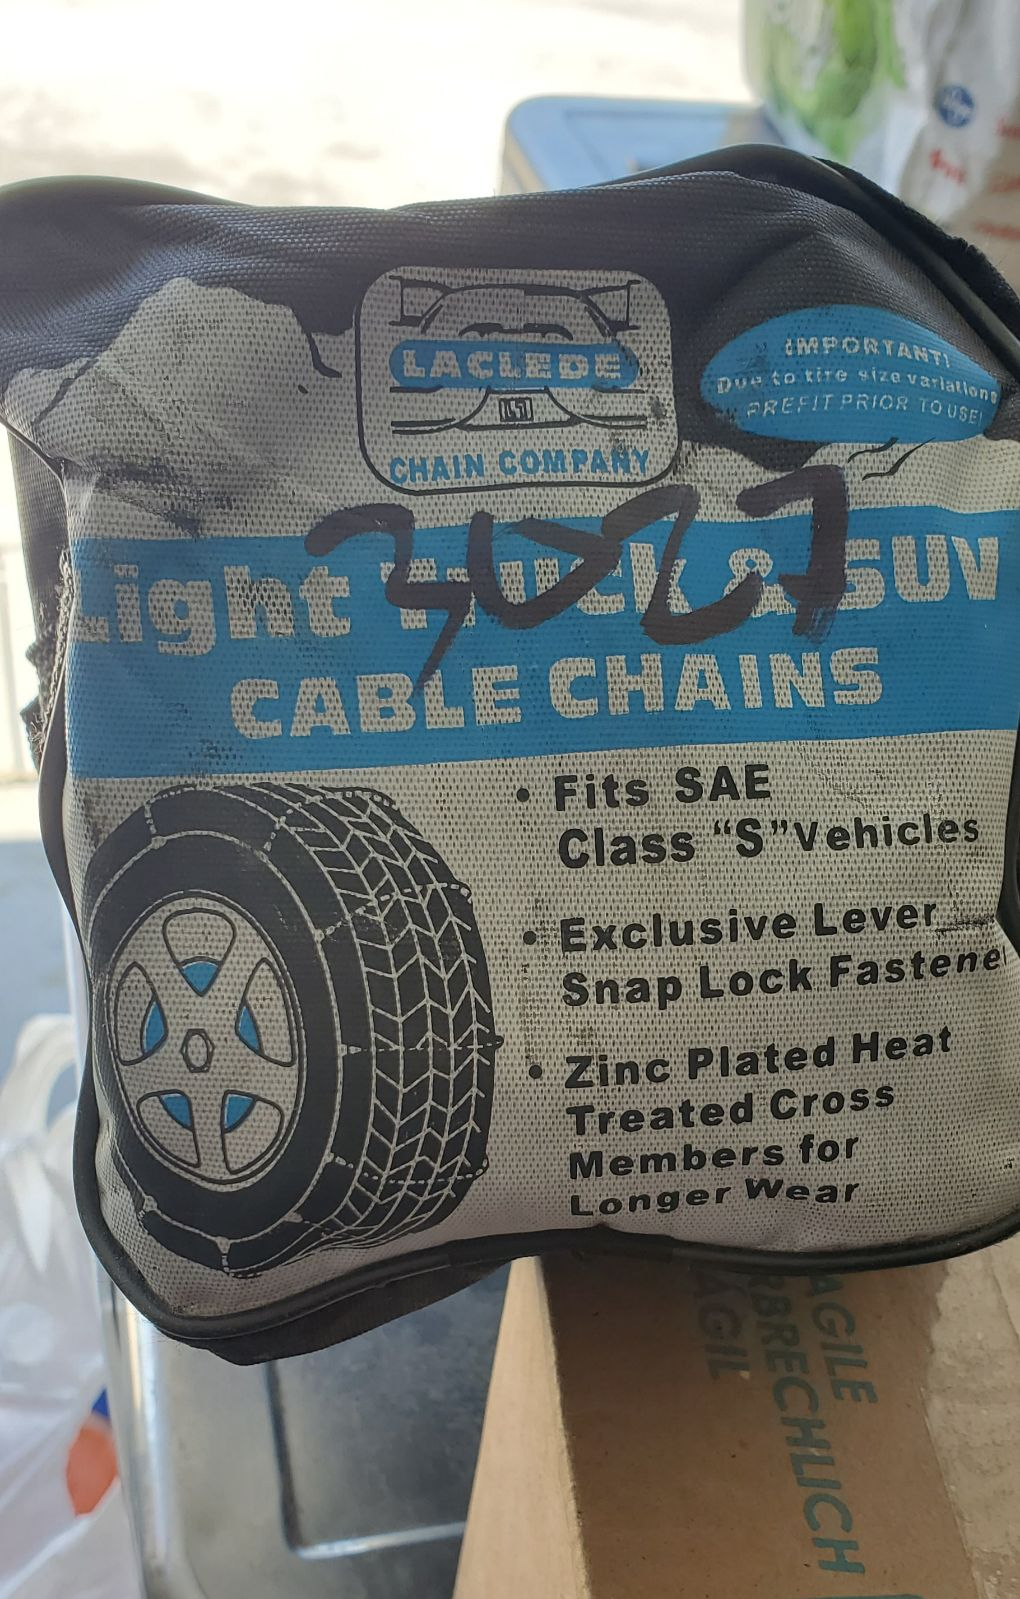 Tire Cable Chains for Snow Conditions